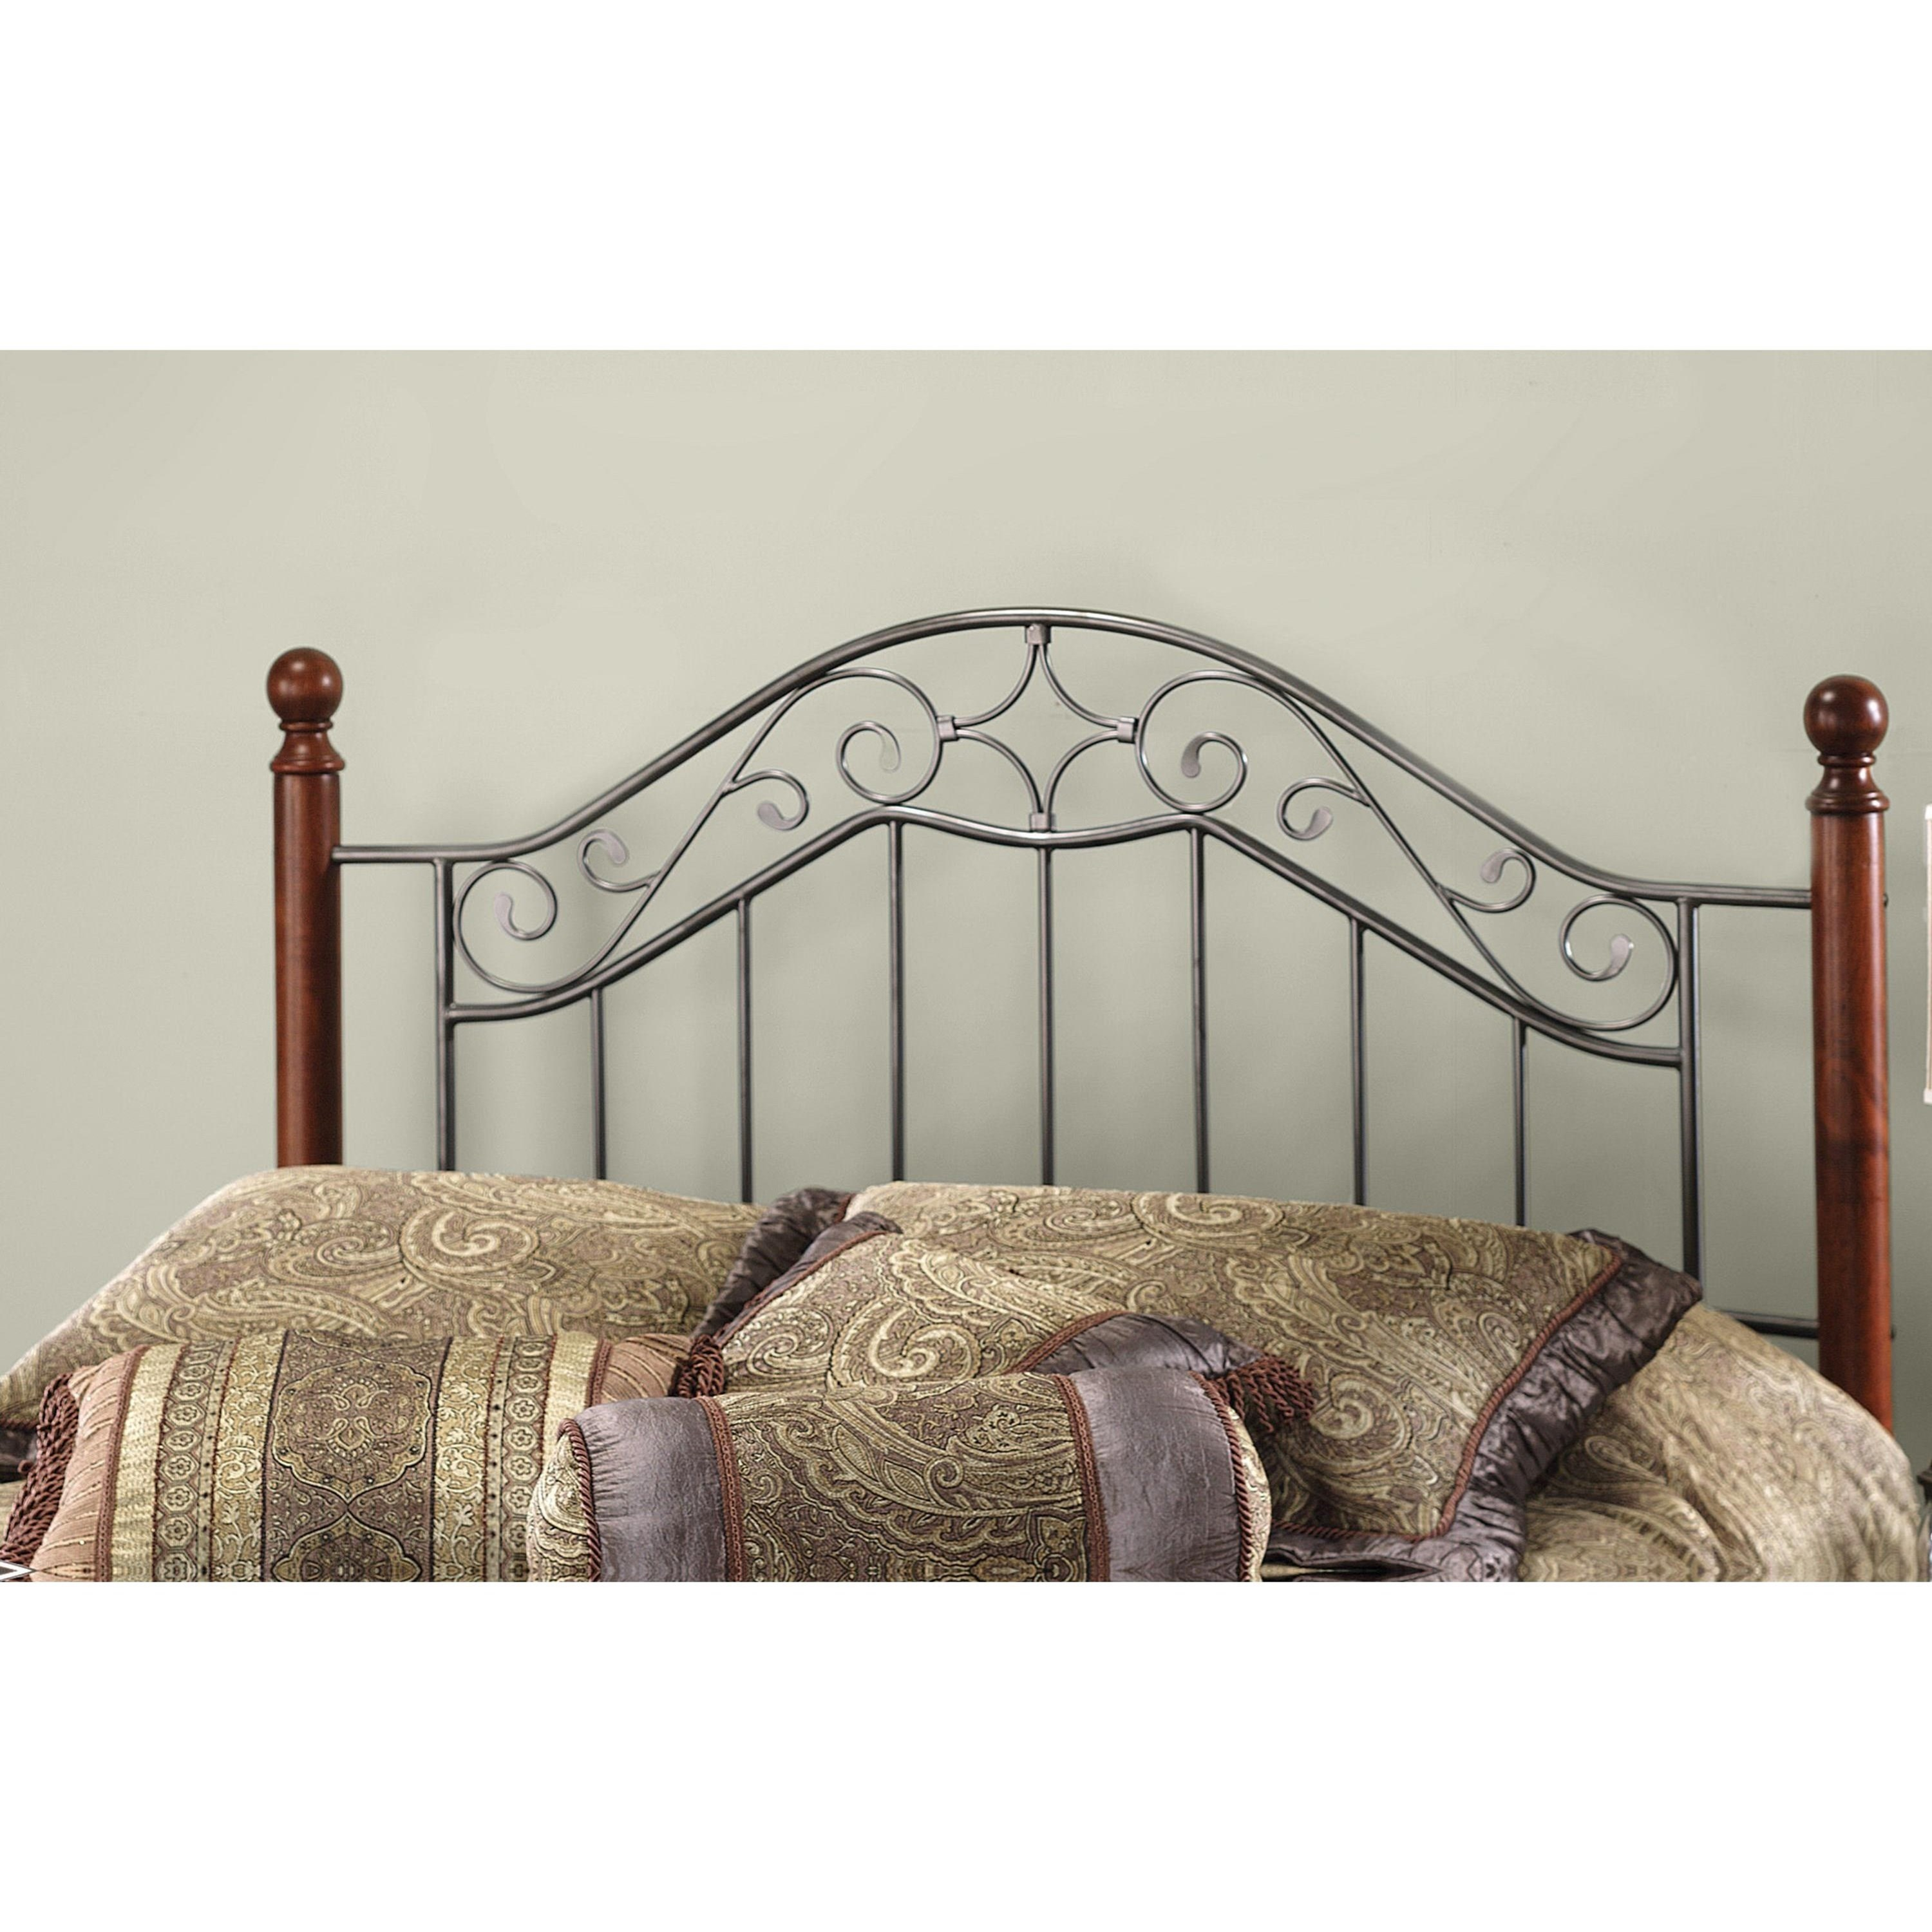 Hillsdale Wood Beds Full/Queen Martino Headboard - Item Number: 1392HFQR